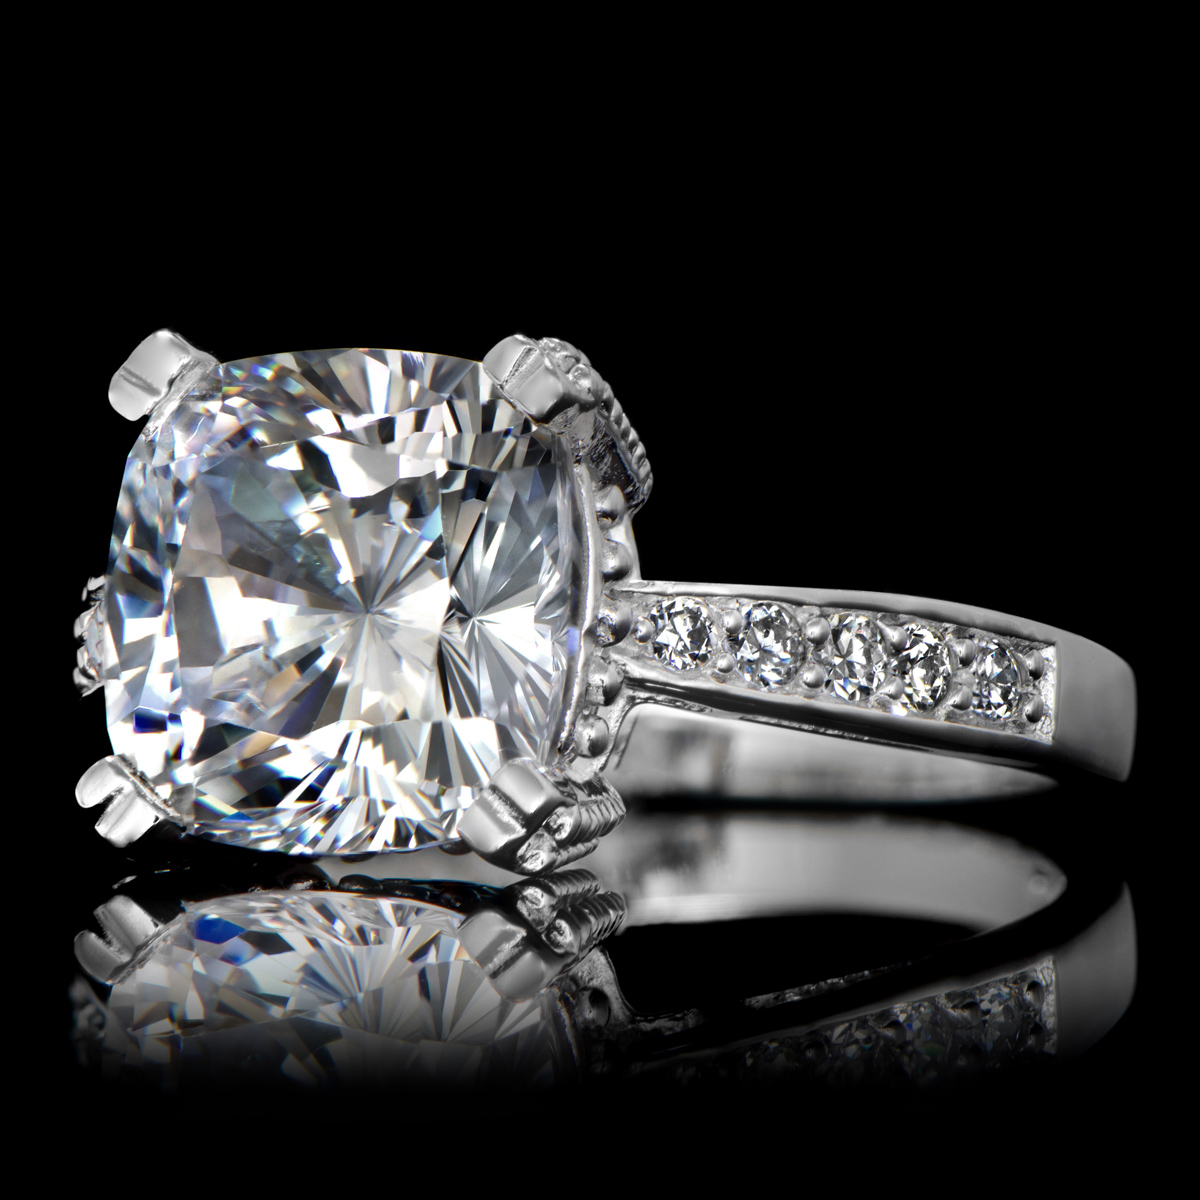 Radiant 5 carat Cushion Cut CZ Engagement Ring